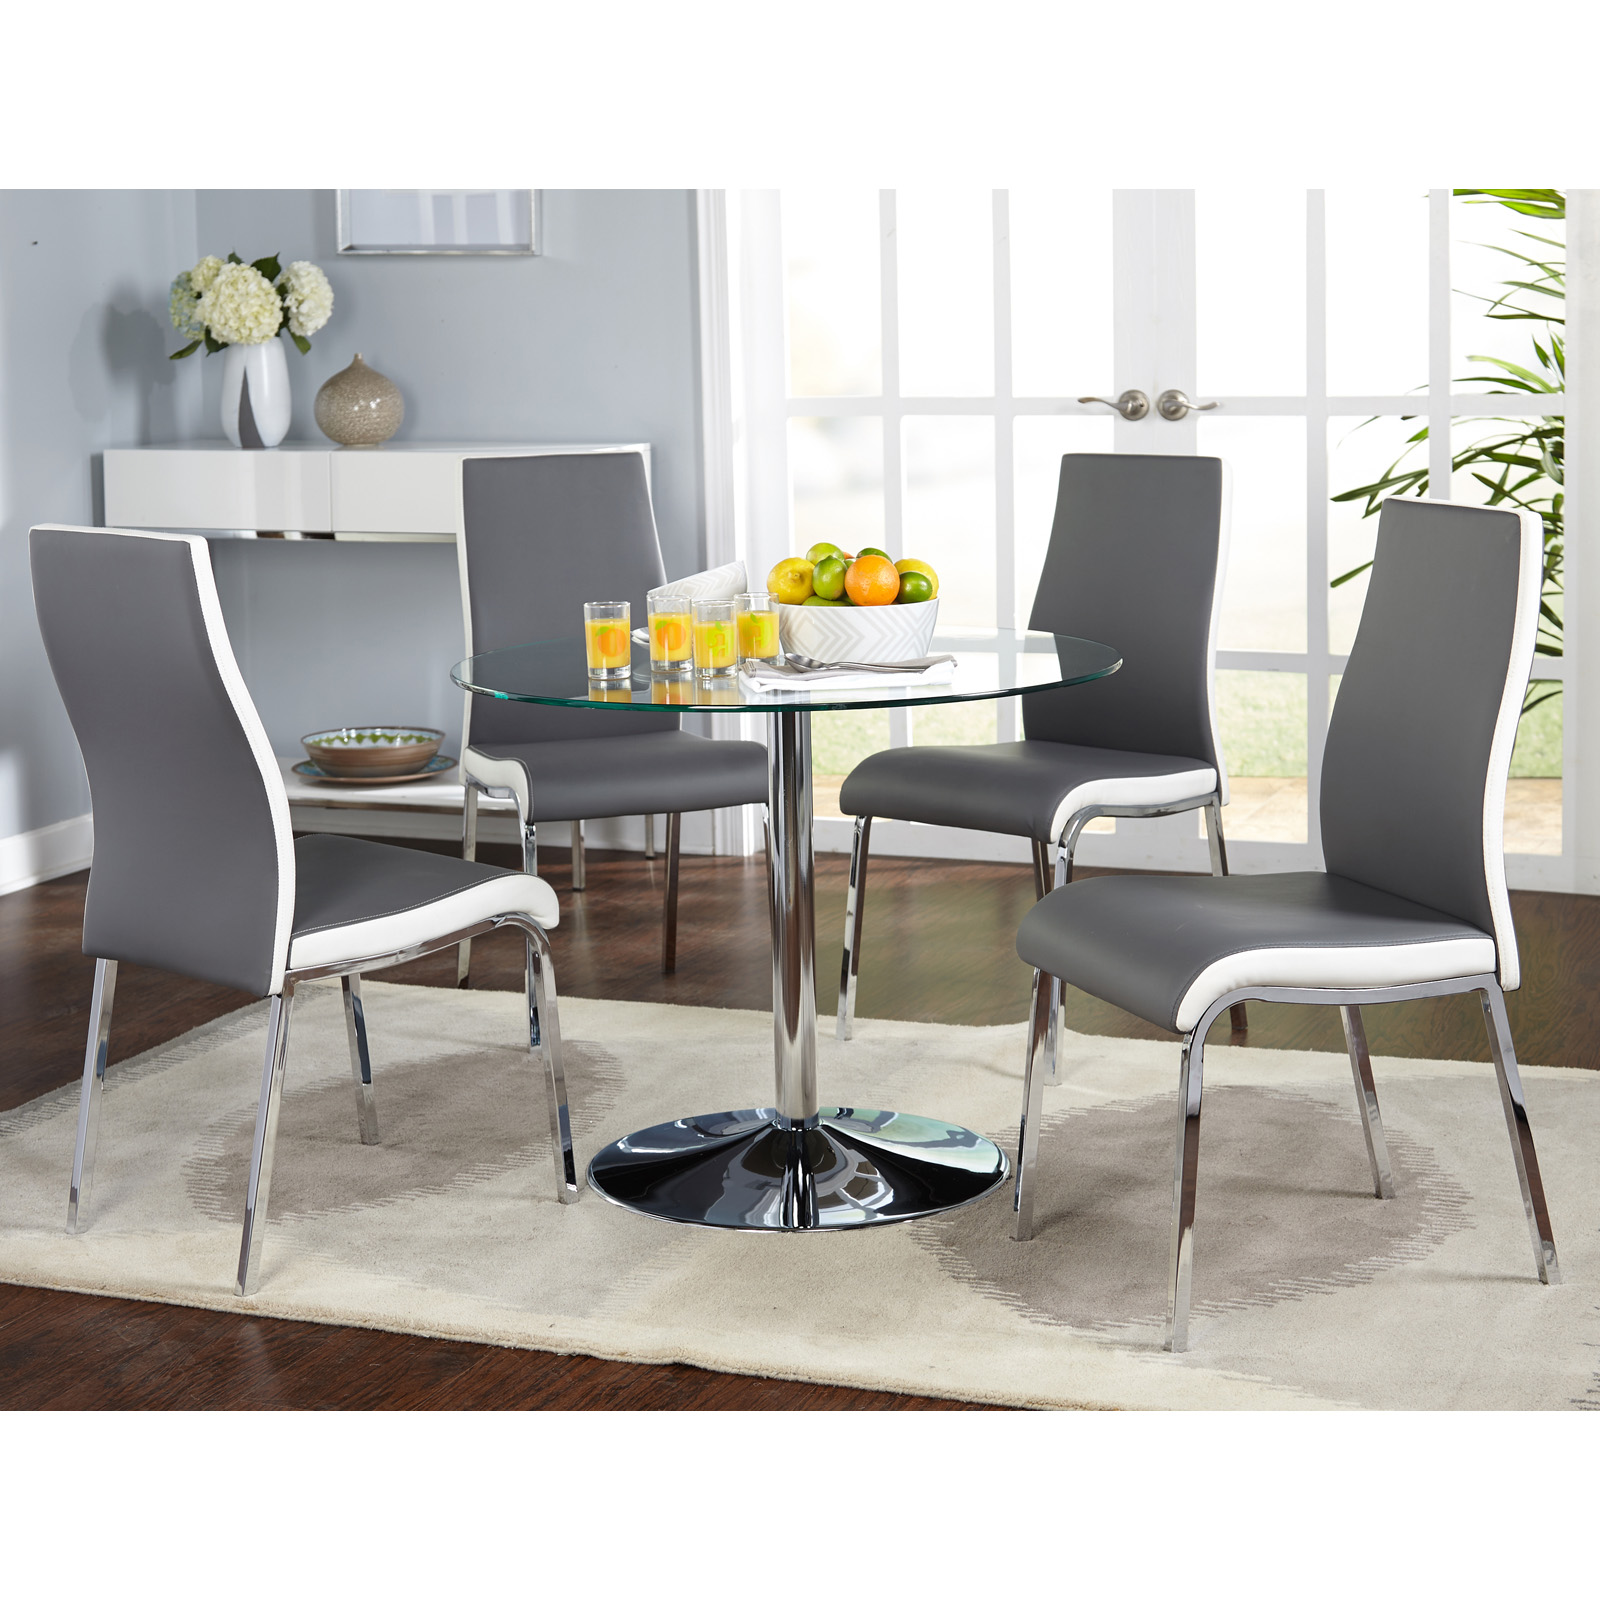 Target Marketing Systems Nora 5 Piece Dining Table Set